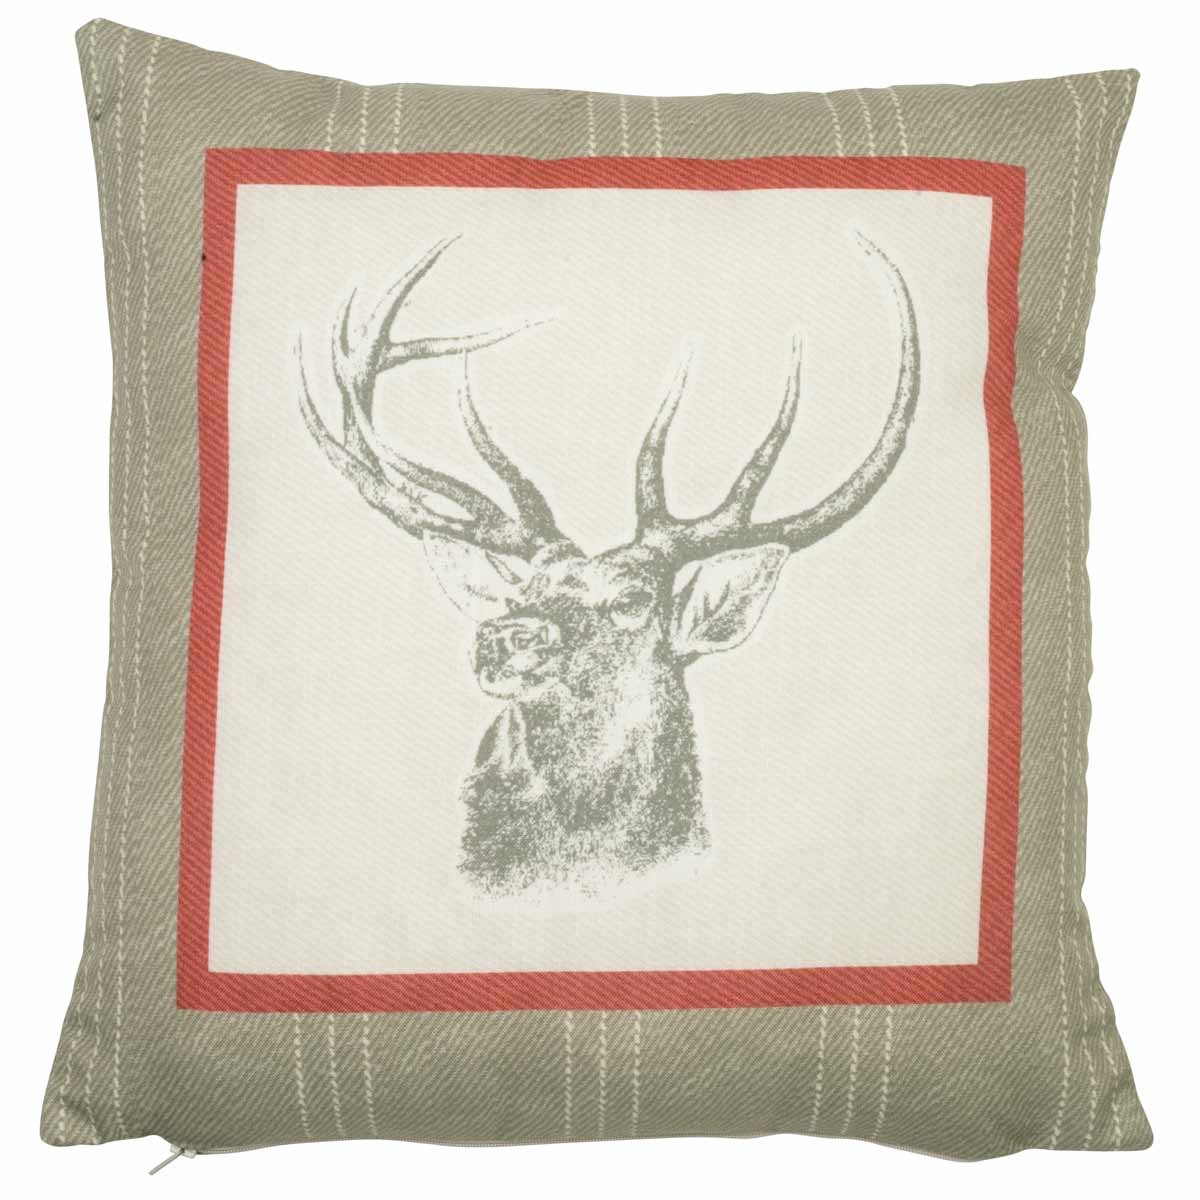 J Rosenthal Cushions And Throws Connolly Check  C/Cover Red Picture